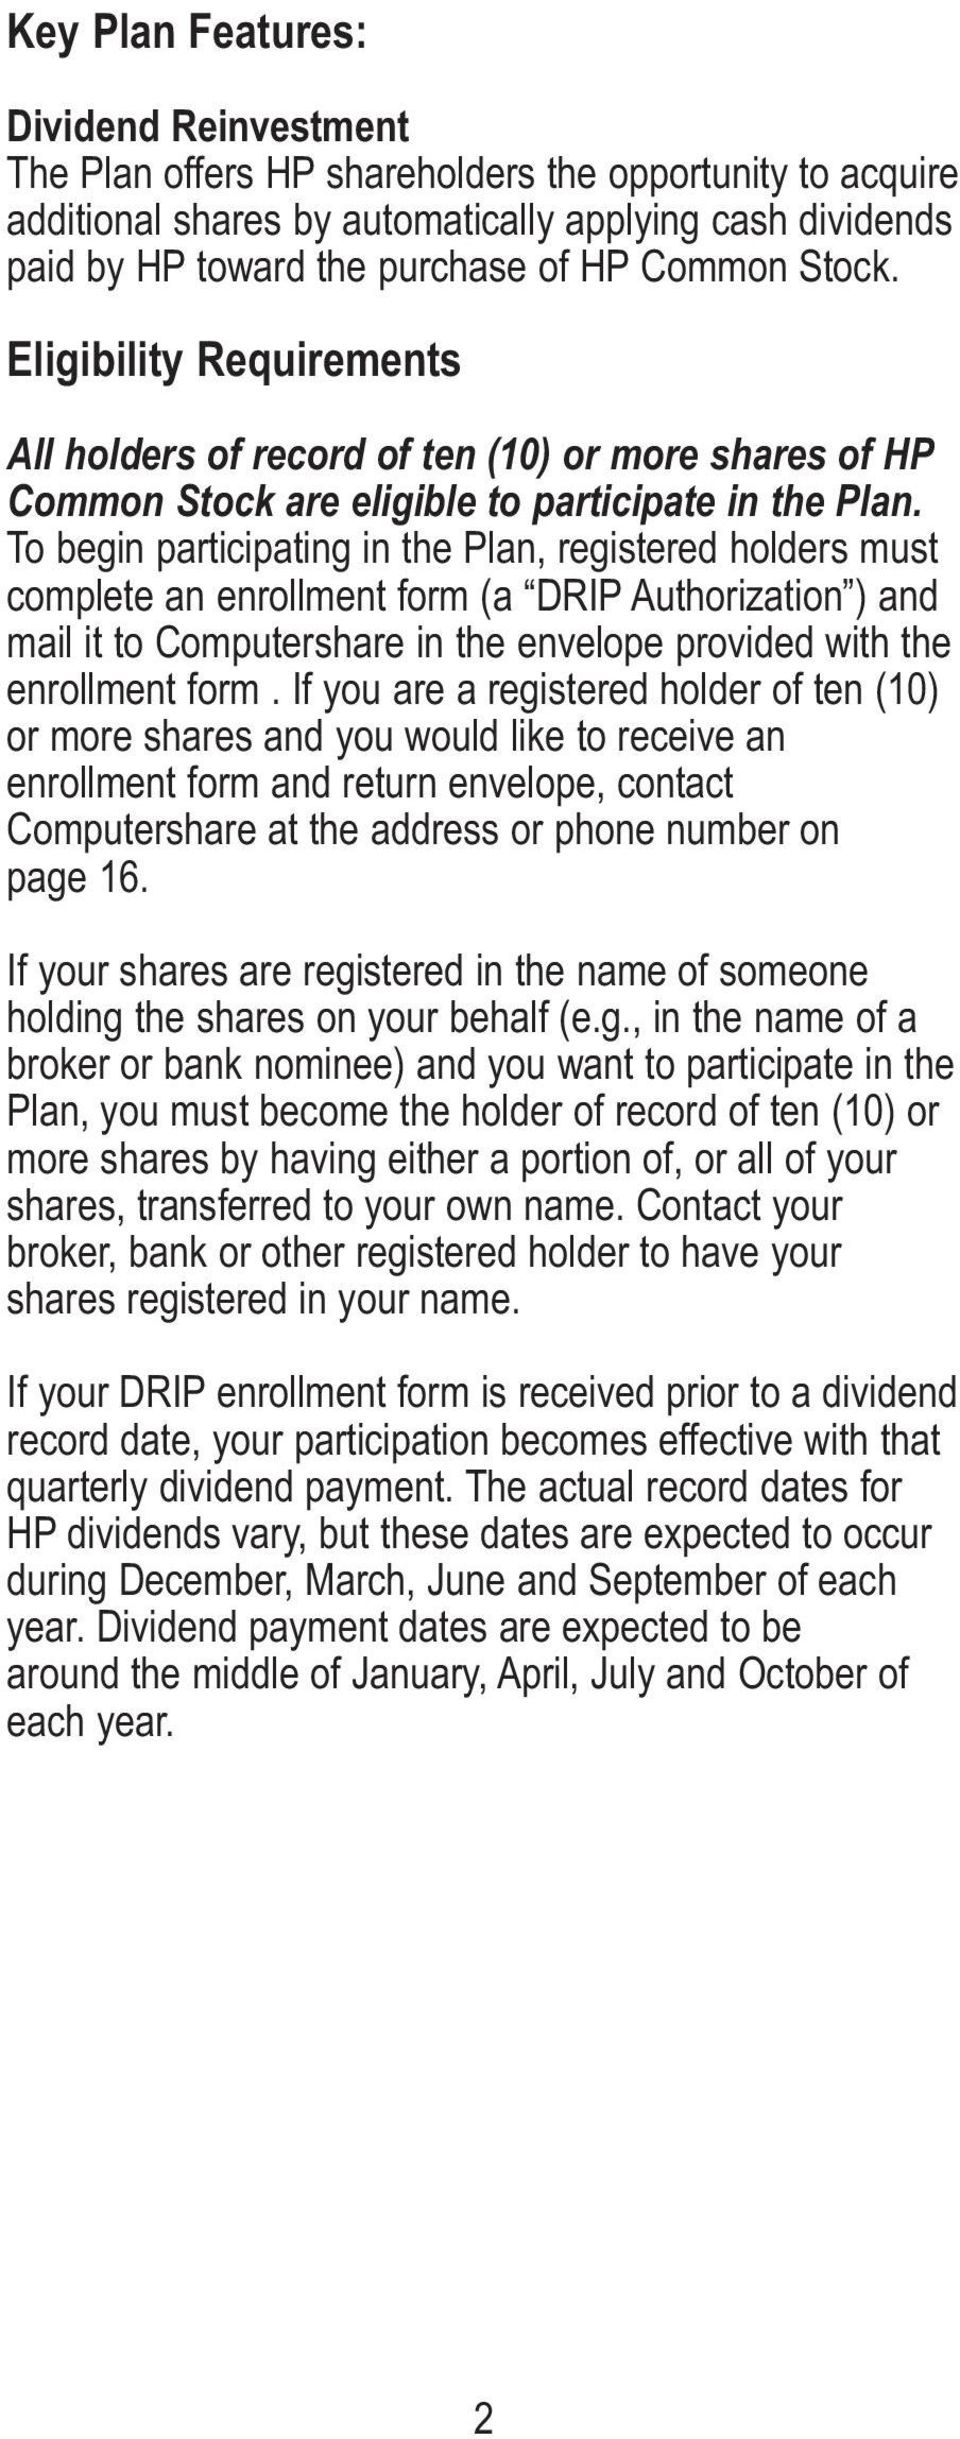 To begin participating in the Plan, registered holders must complete an enrollment form (a DRIP Authorization ) and mail it to Computershare in the envelope provided with the enrollment form.